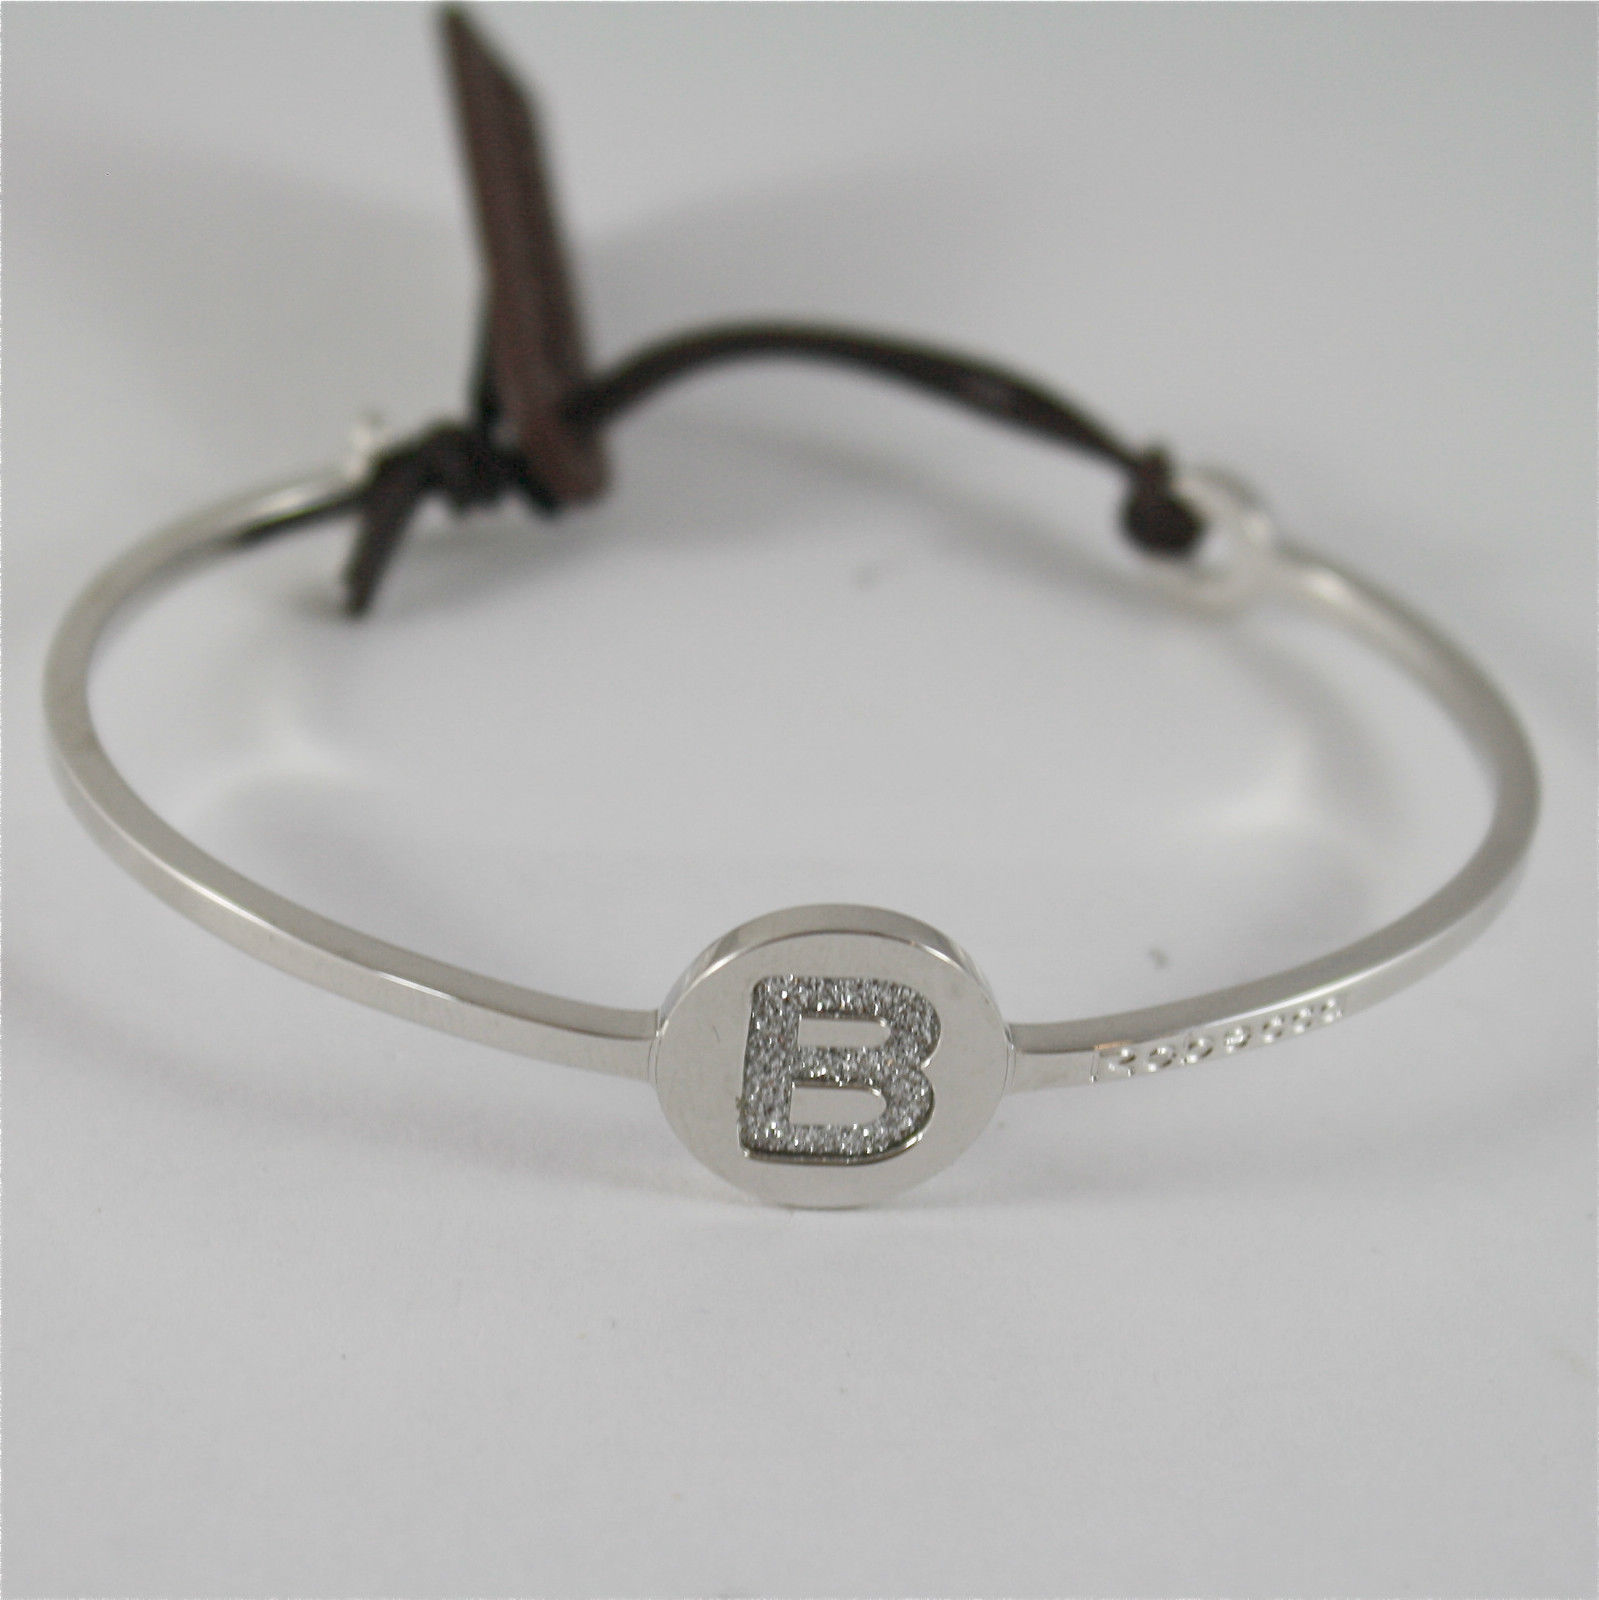 WHITE GOLD PLATED BANGLE BRONZE REBECCA BRACELET WITH B BWGBBS69 MADE IN ITALY